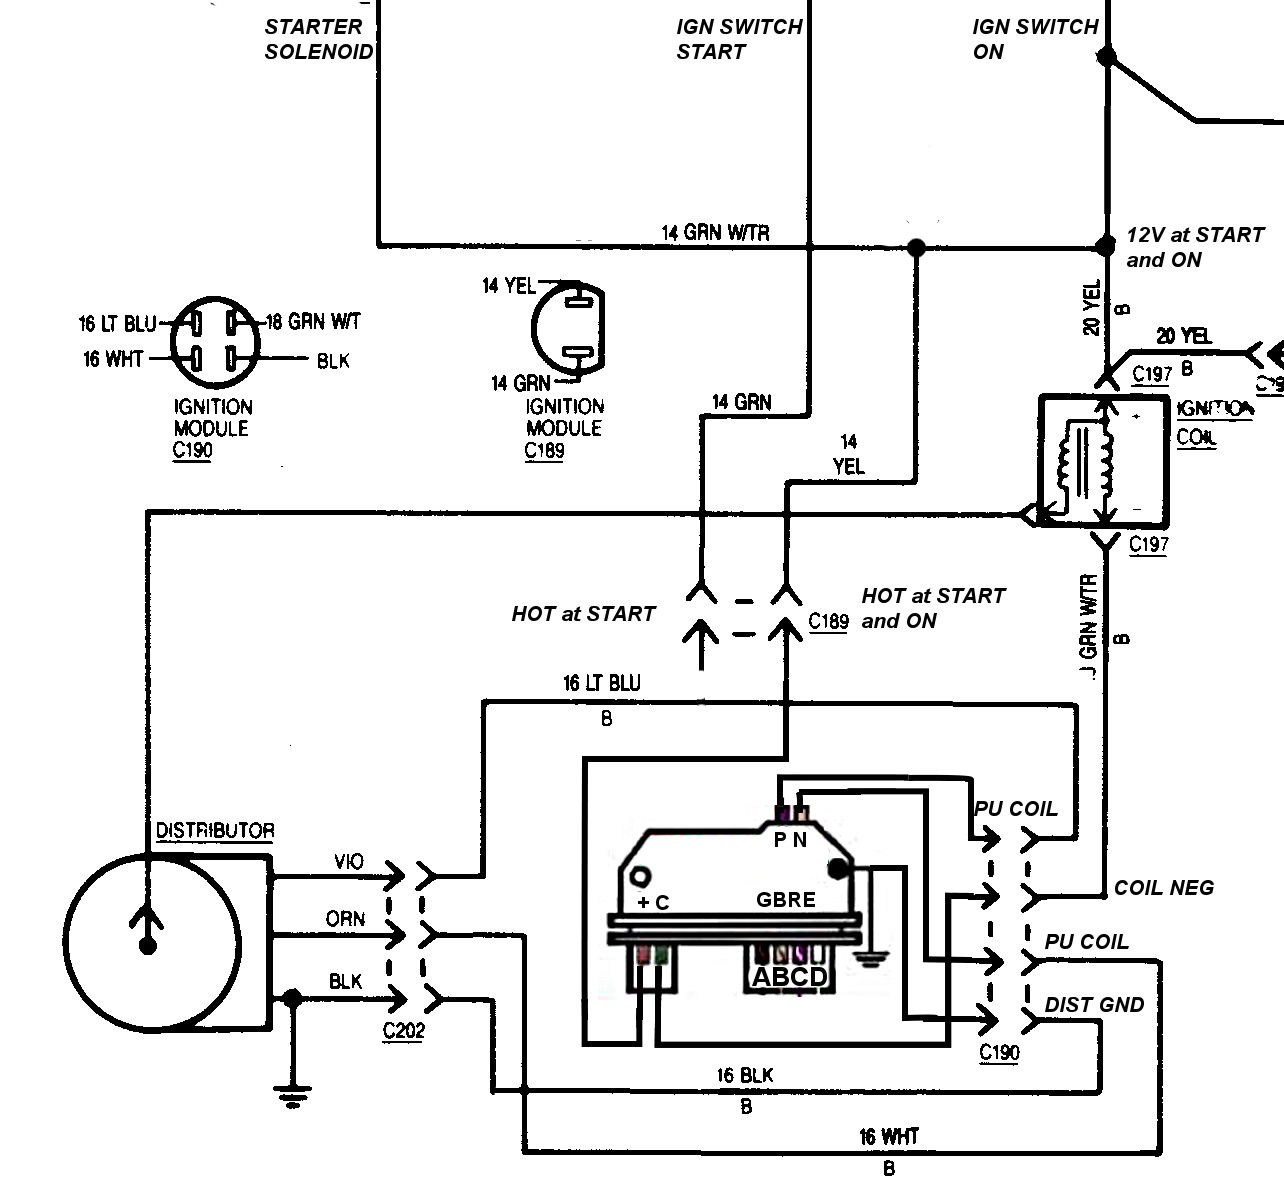 TBI+Wiring+1 troubled child gm tbi ignition wiring hei module wiring diagram at n-0.co